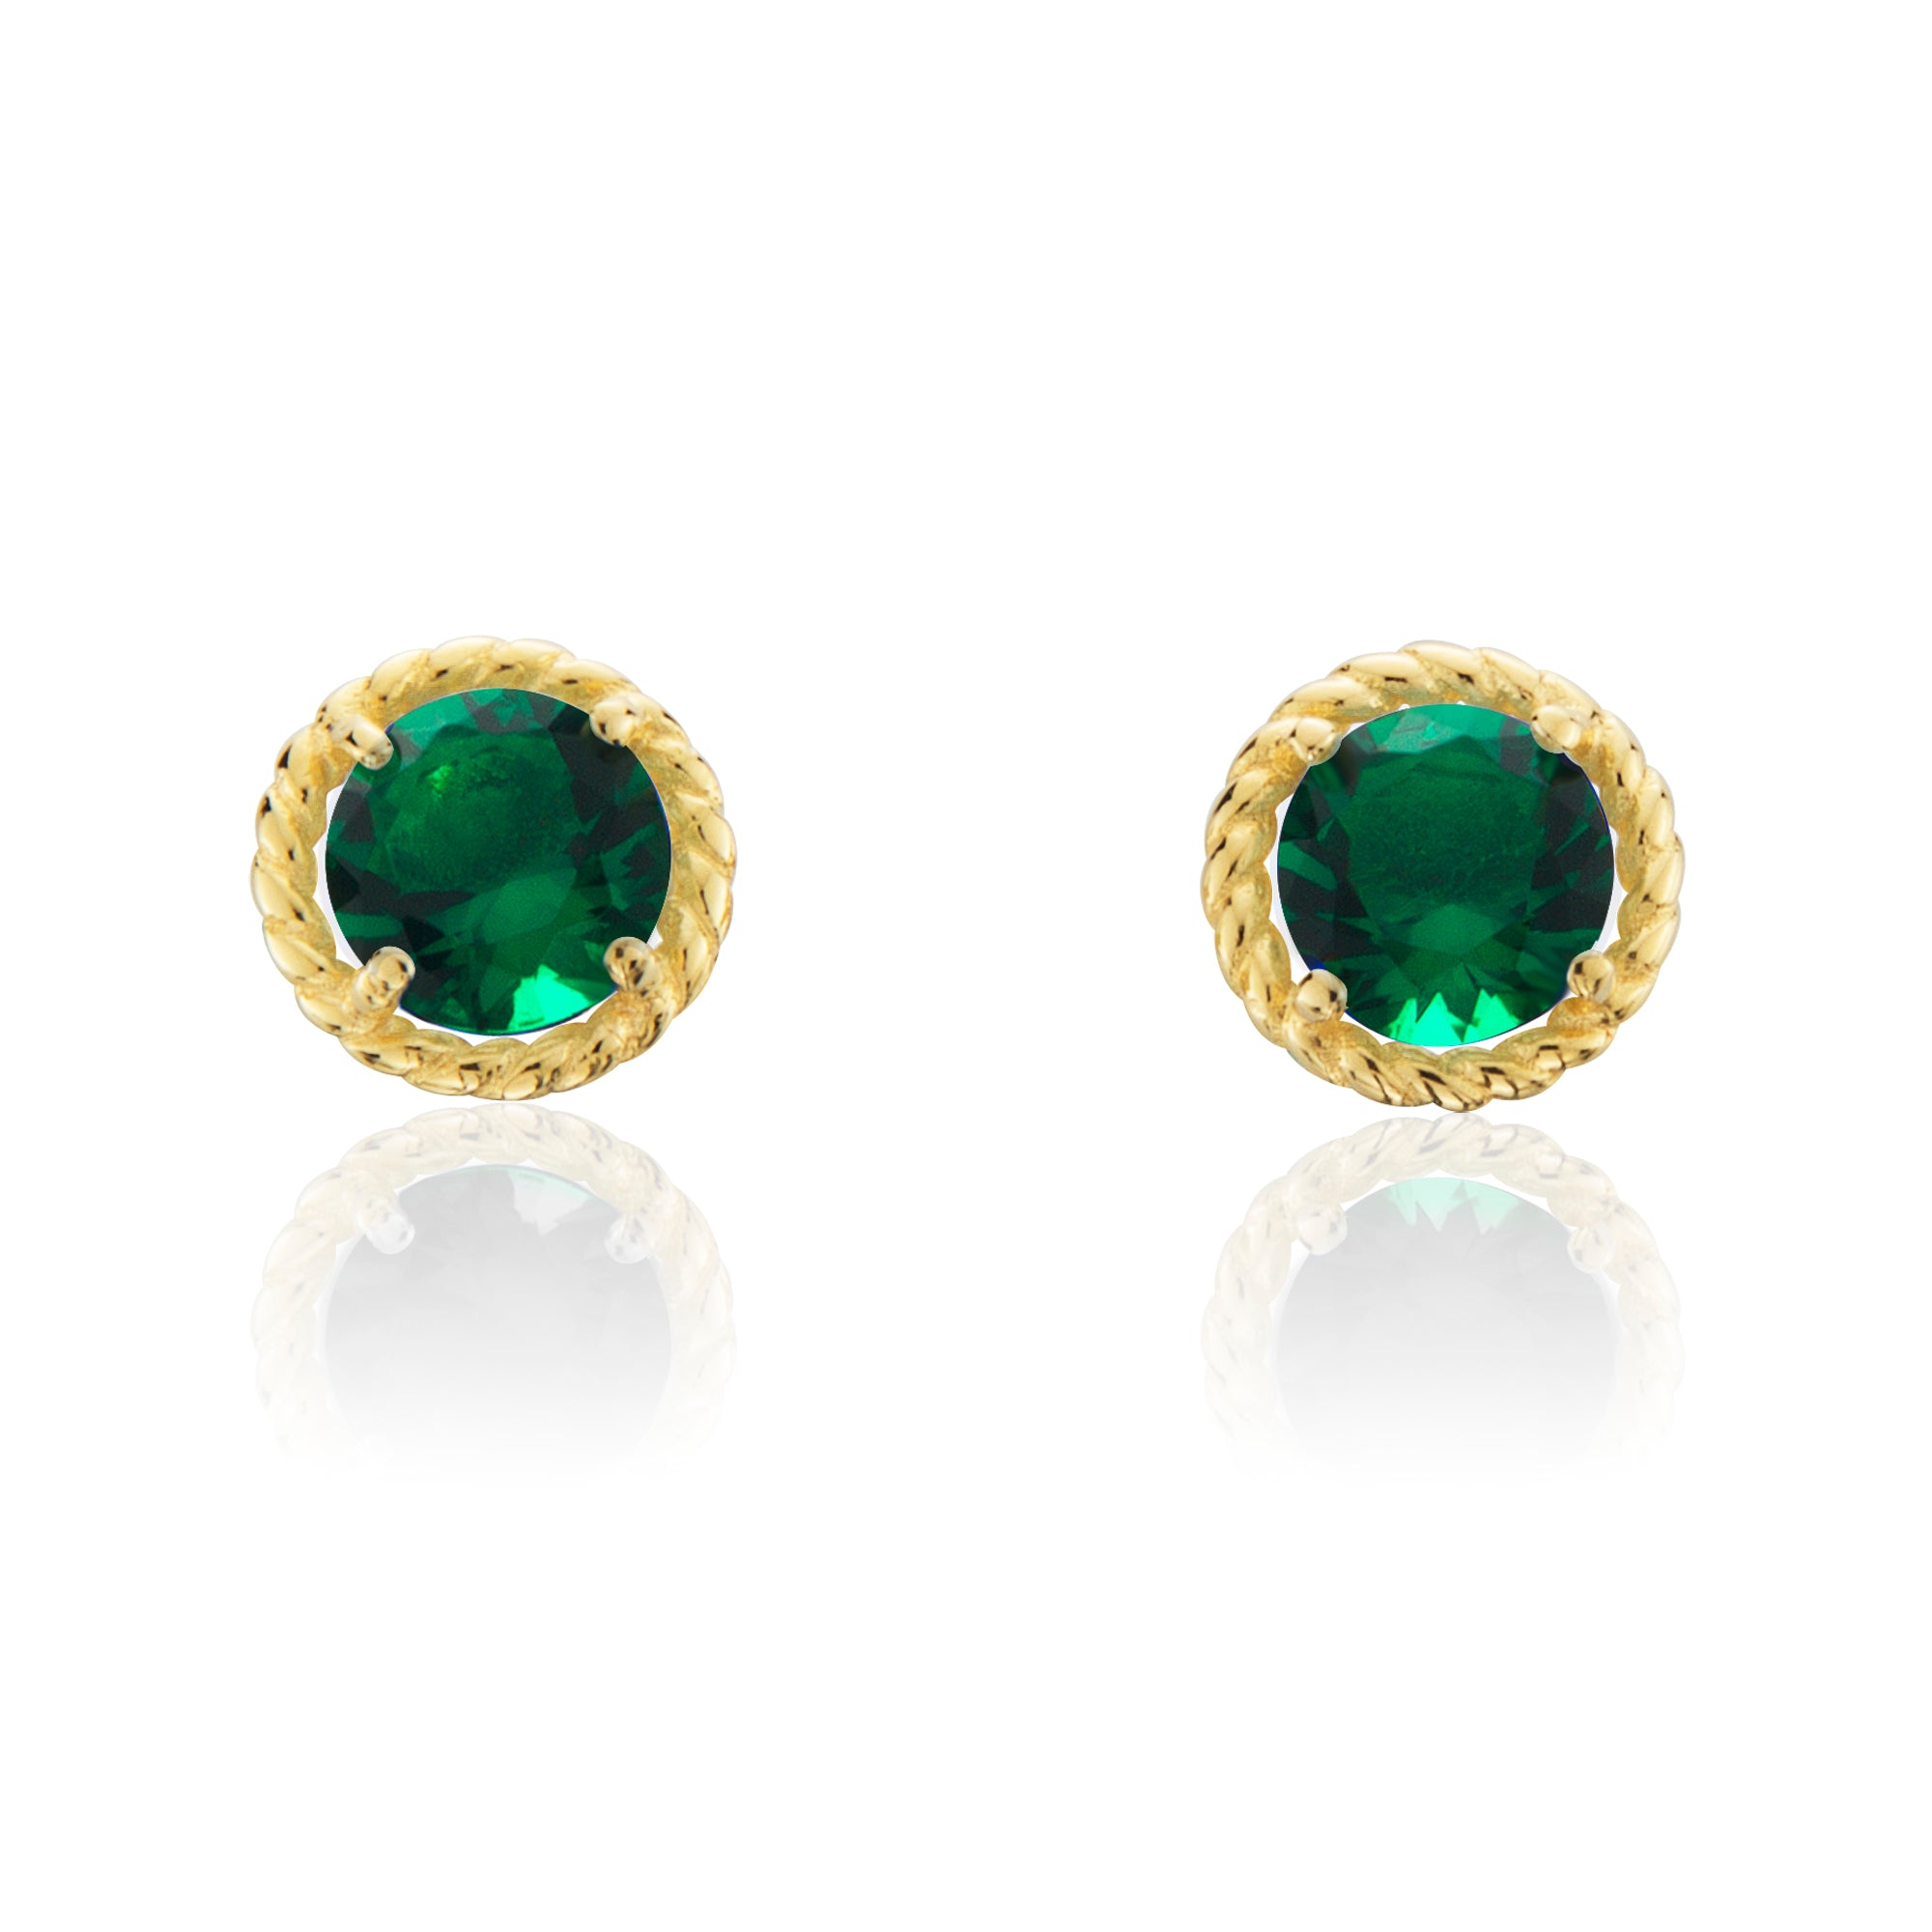 jewellery il uk created zoom earrings vintage listing antique fullxfull emerald